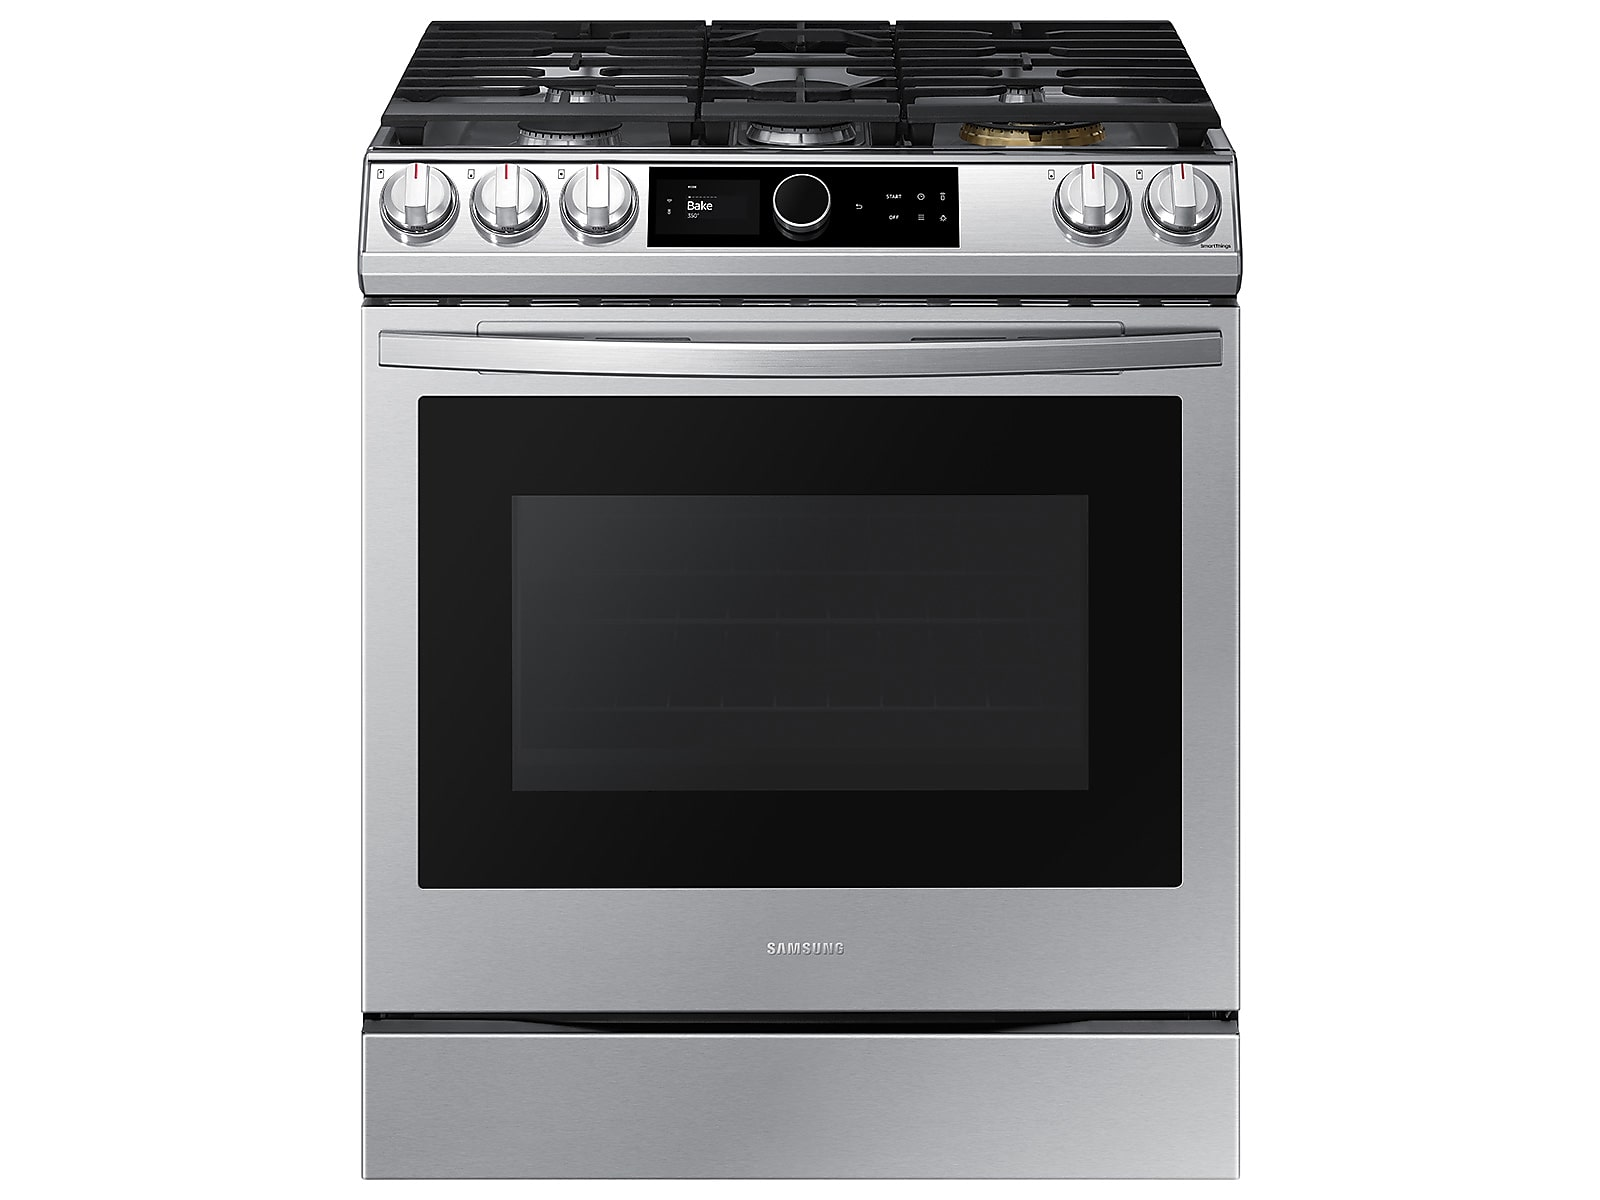 Samsung 6.0 cu. ft. Front Control Slide-in Gas Range with Smart Dial, Air Fry & Wi-Fi in Silver(NX60T8711SS/AA)